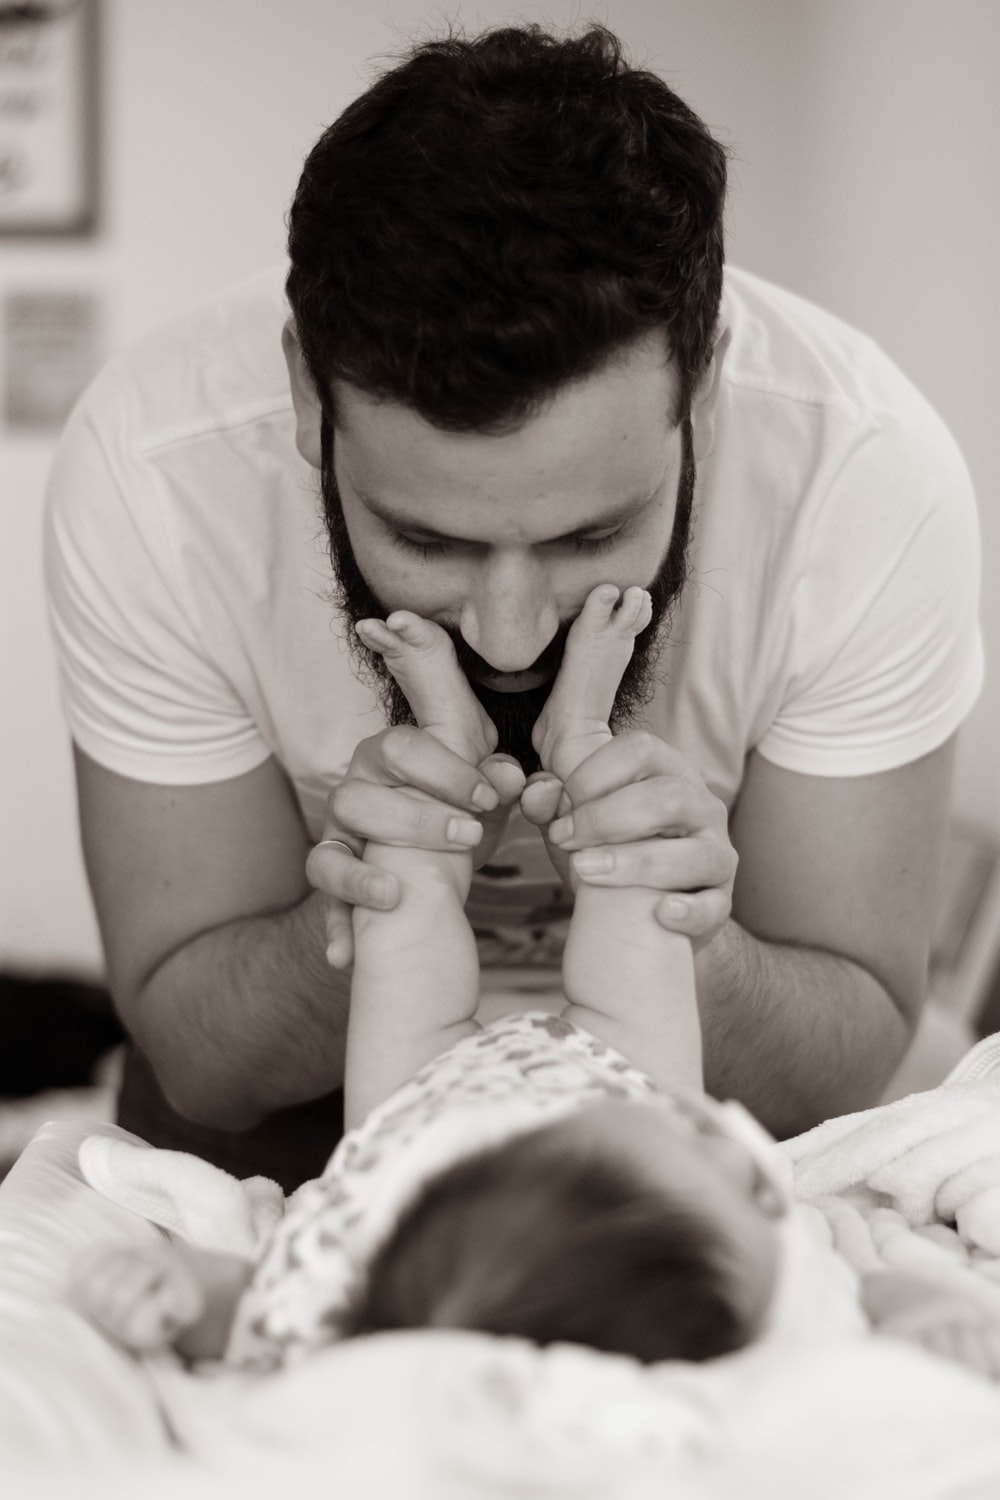 grayscale photography of man playing with baby